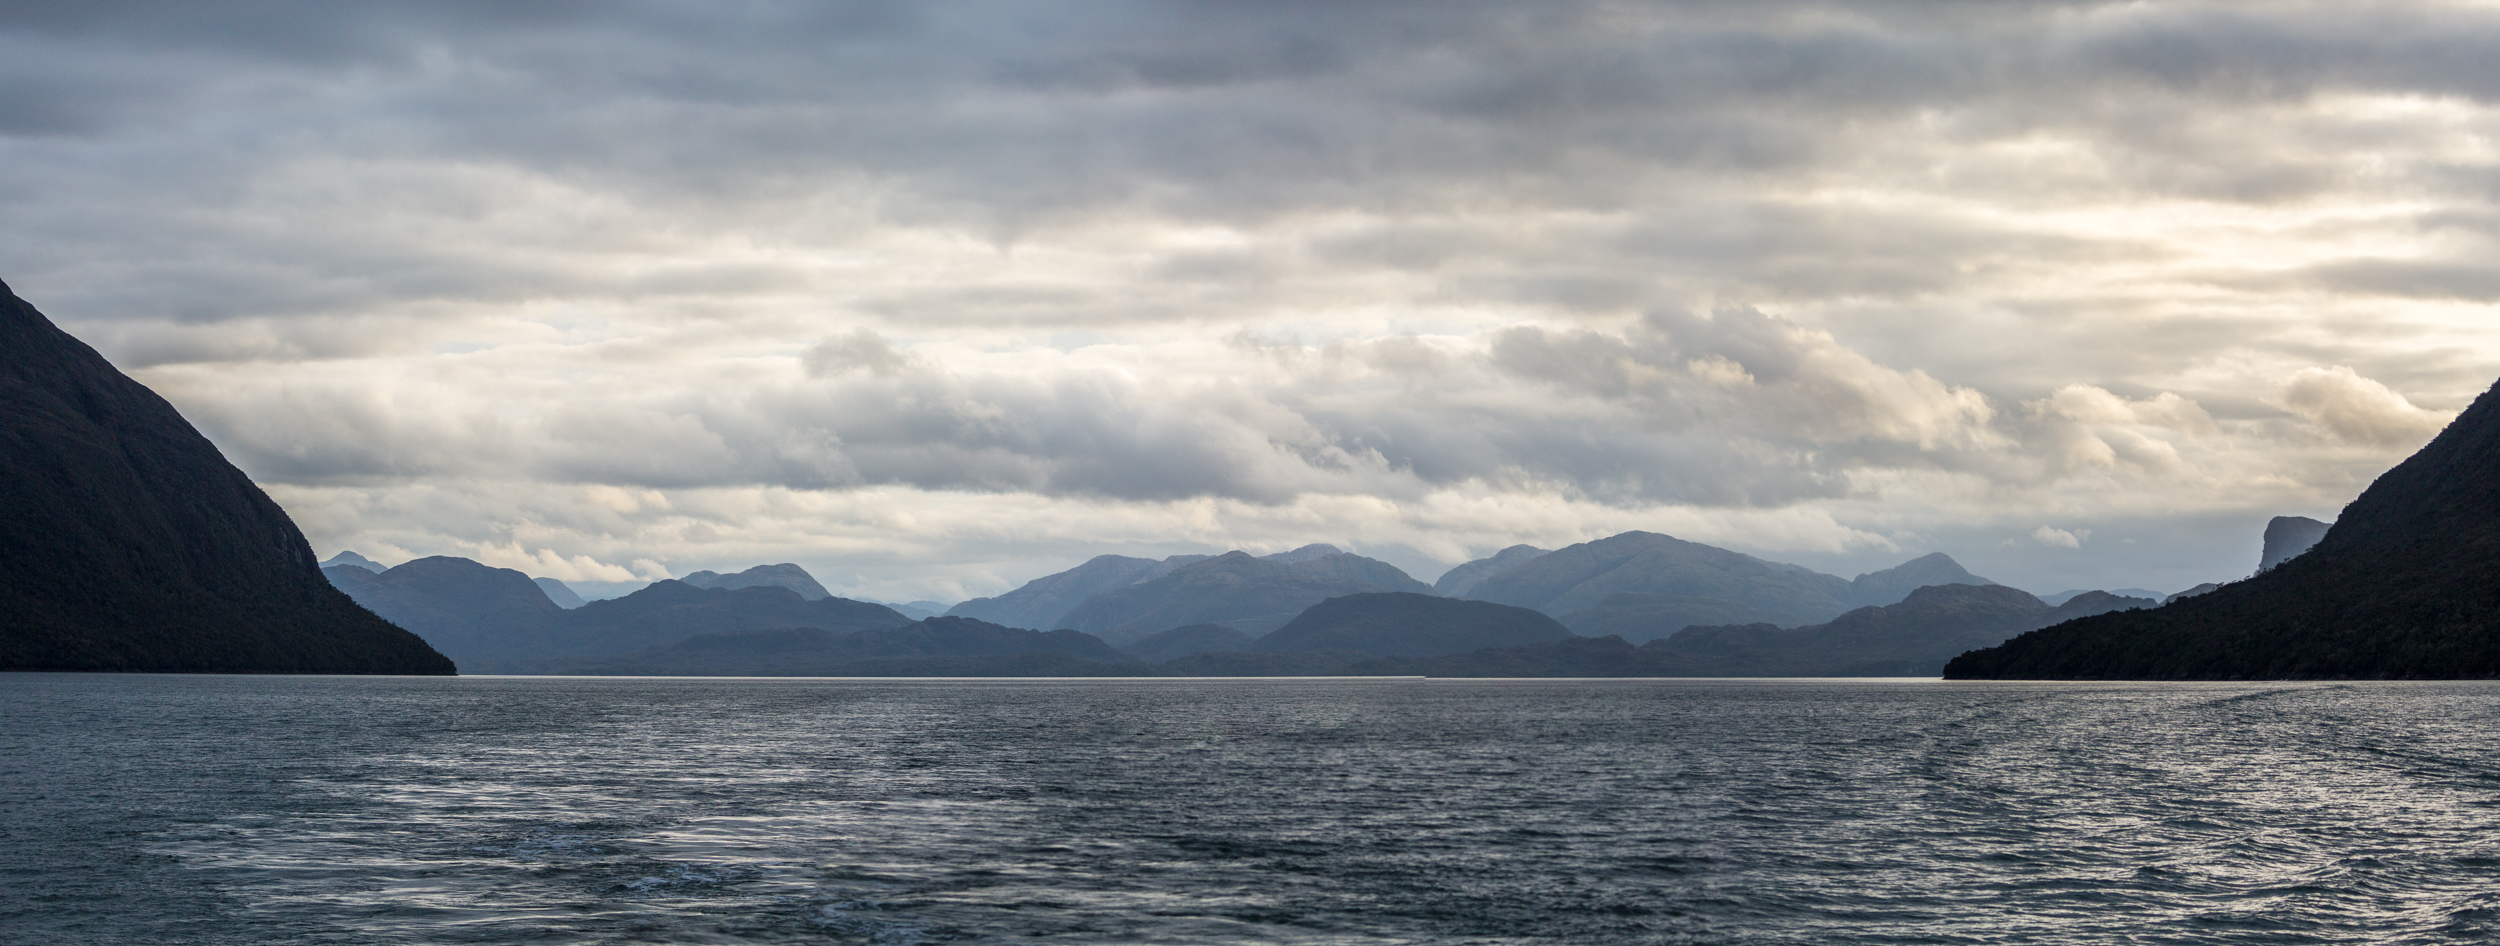 THE RUGGED COAST OF THE BERNARDO O'HIGGINS NATIONAL PARK SEEN FROM THE FERRY - Bernardo O'Higgins National Park covers an immense area of islands, channels and fiords, many of which are visible from ferry crossings that travel north and south through Patagonia.